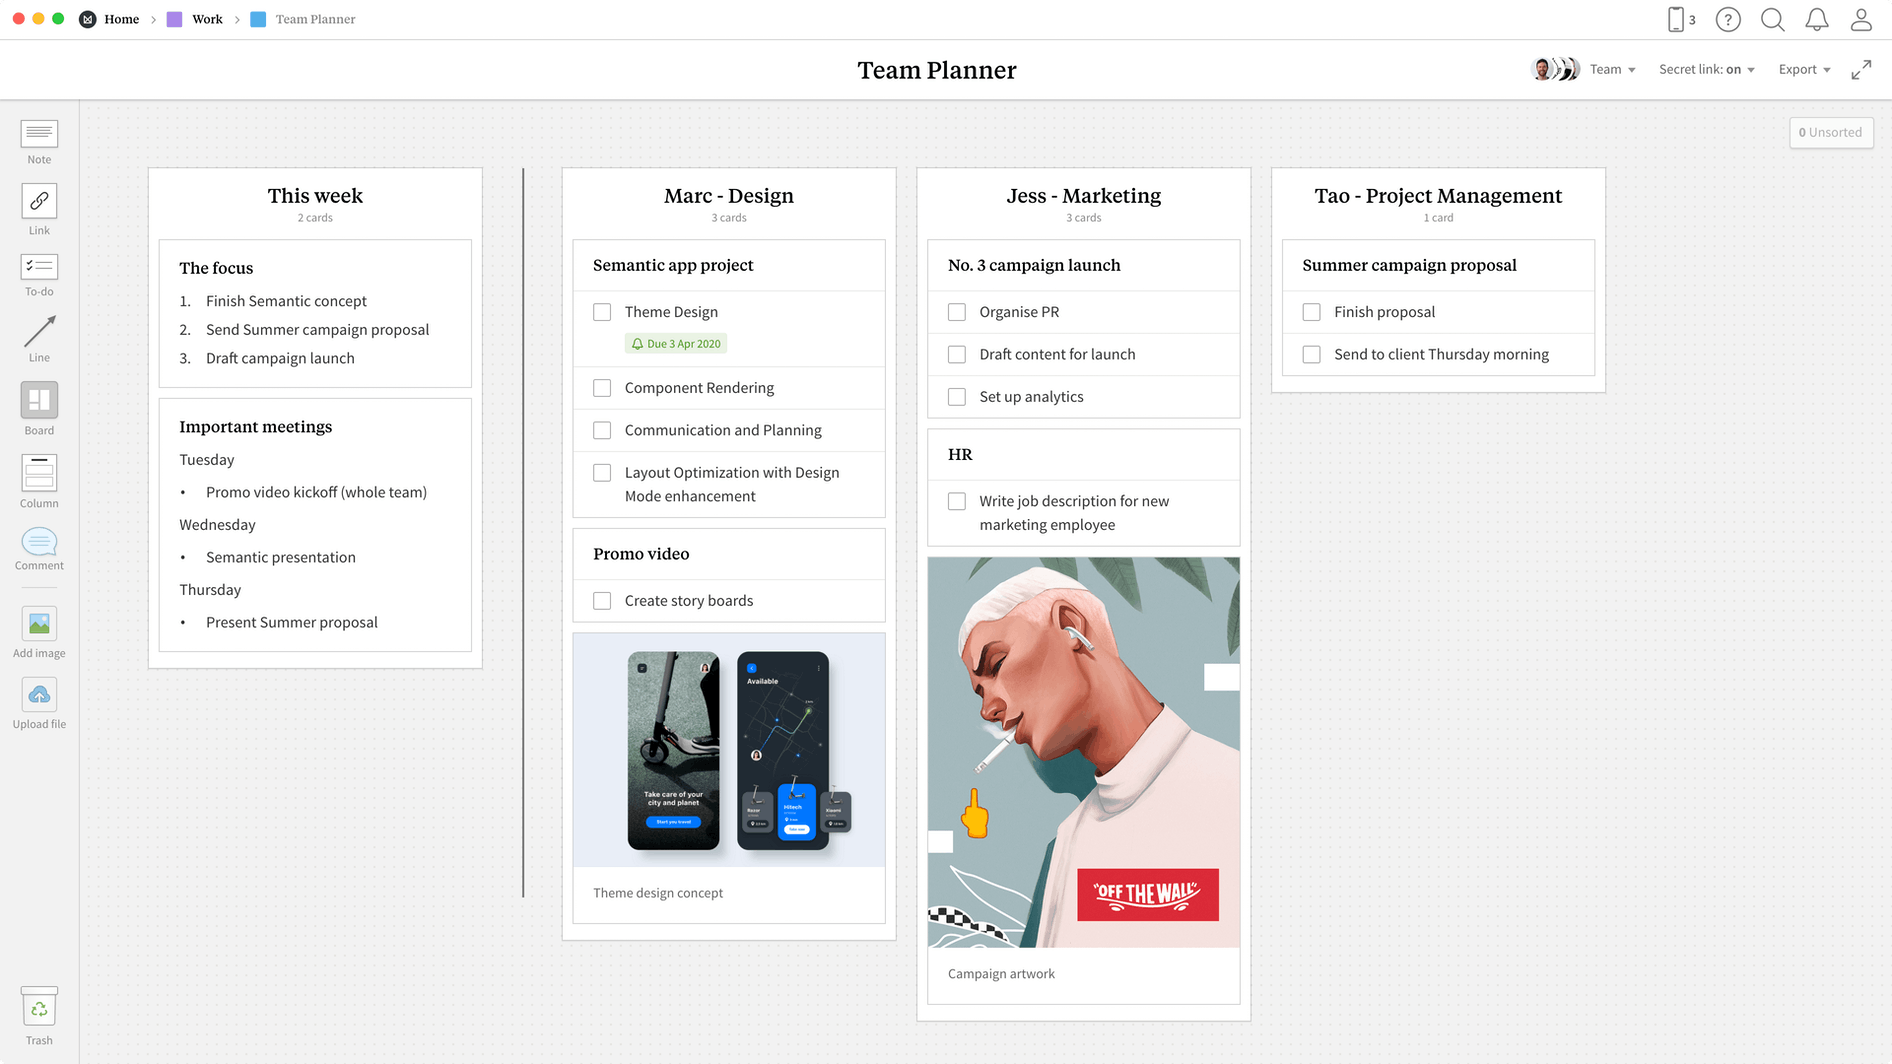 Team Planner Template, within the Milanote app